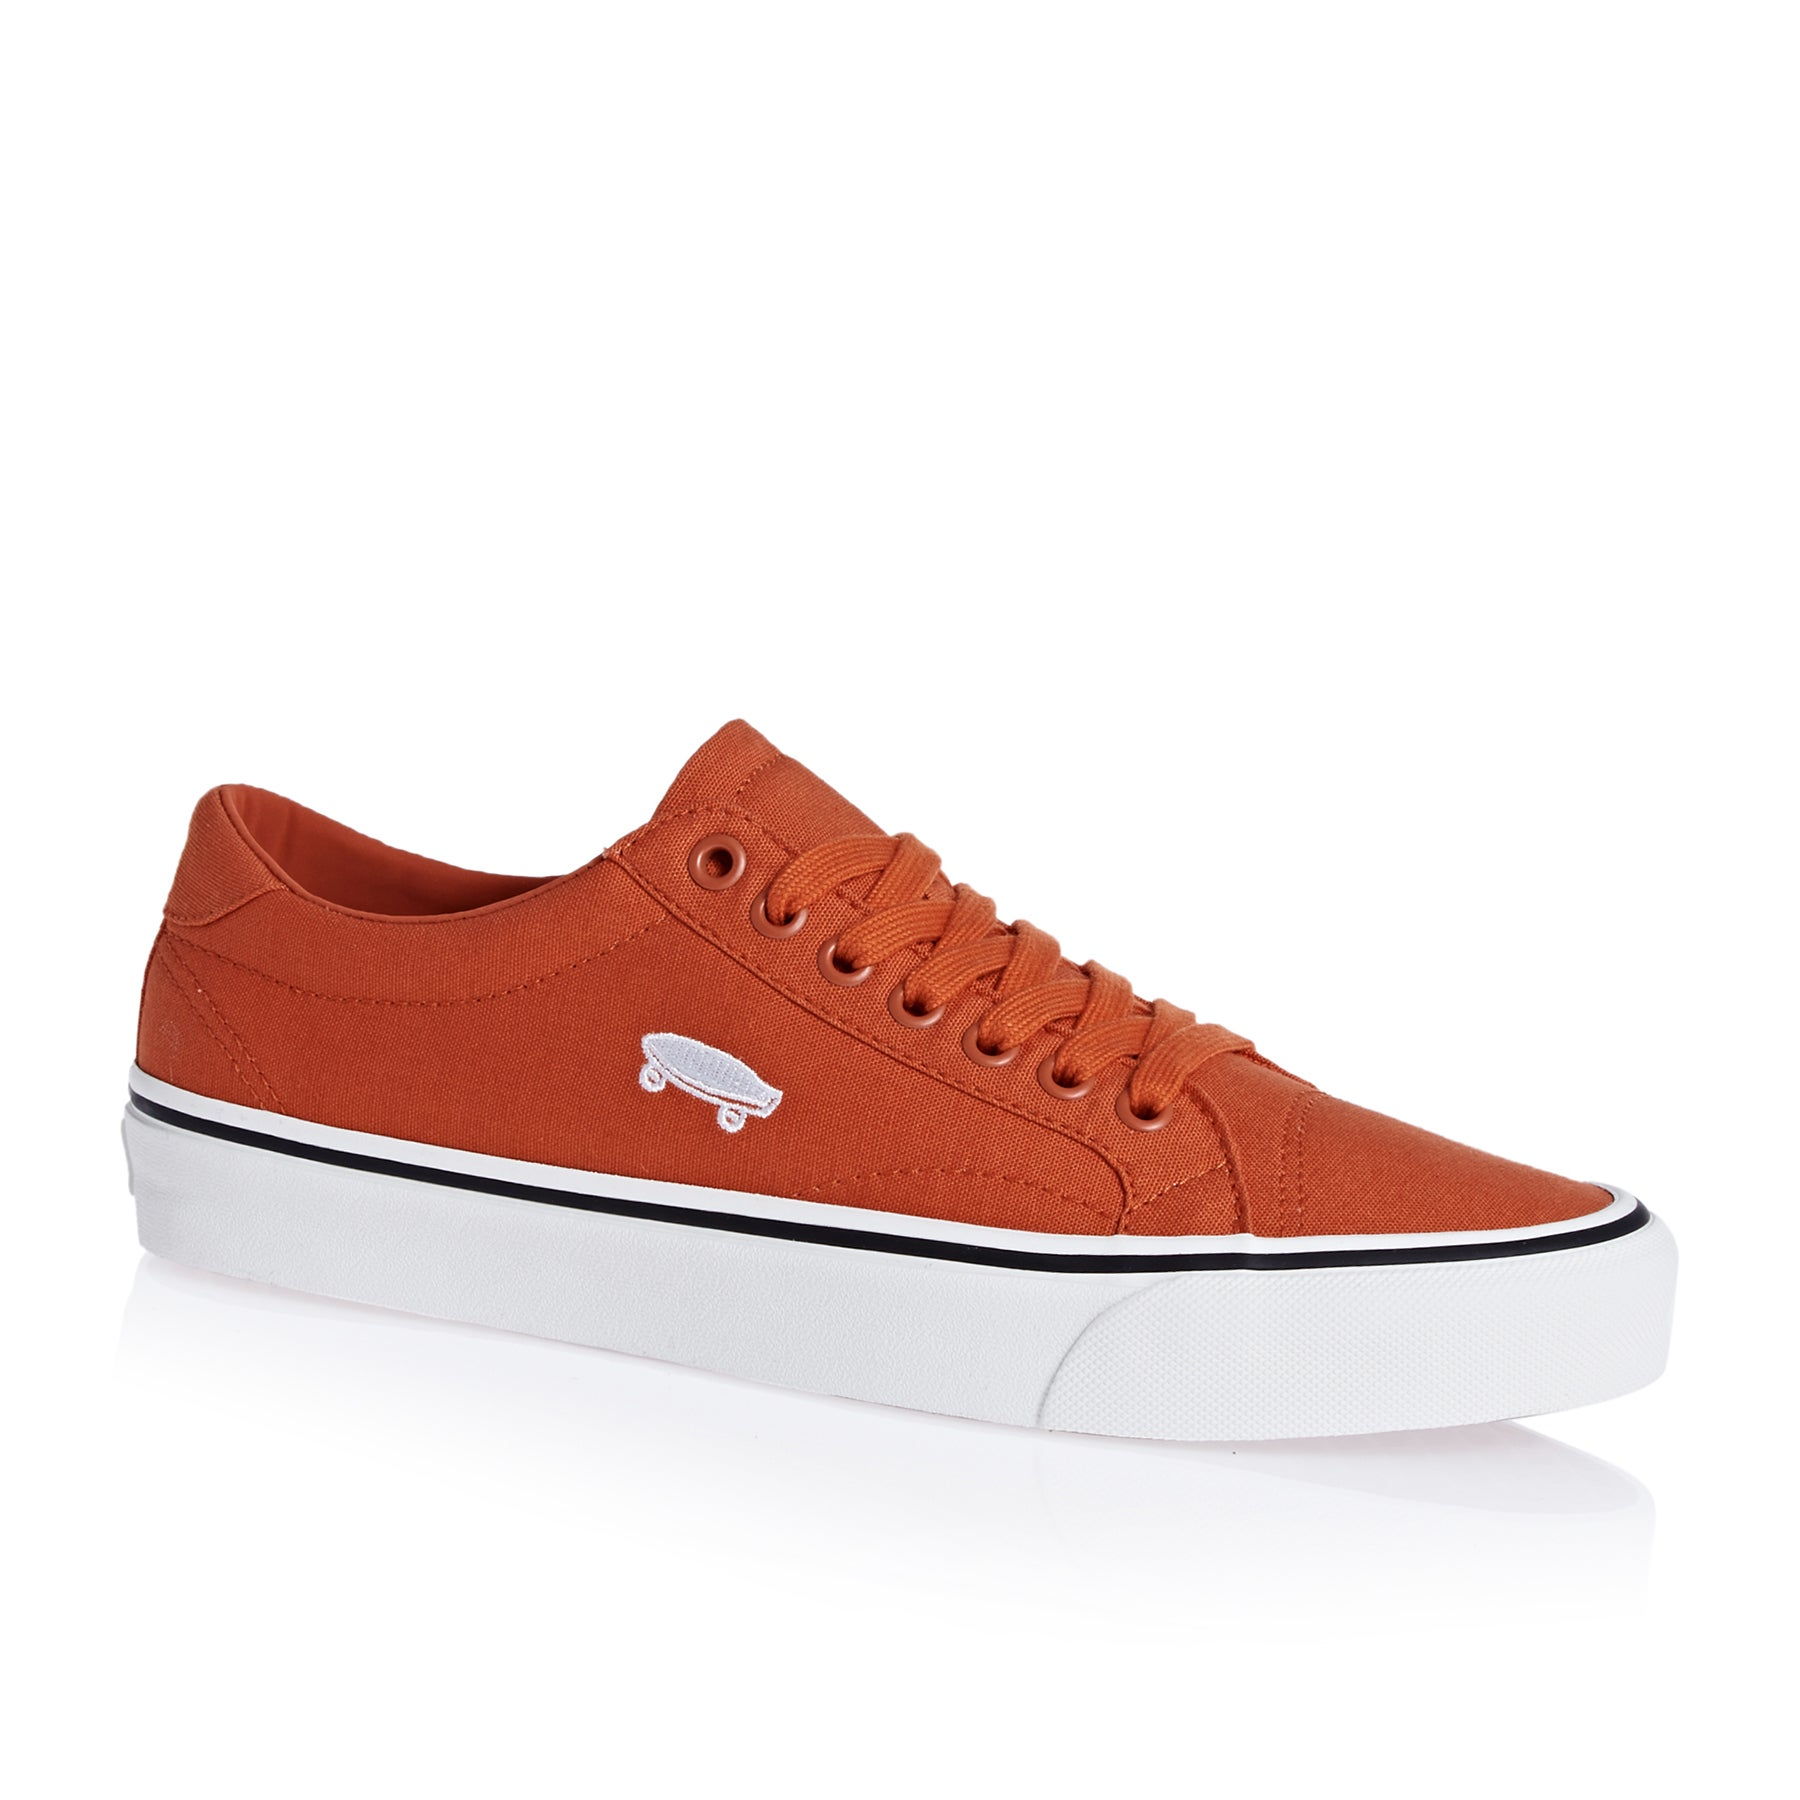 Vans Court Icon Shoes - Canvas   Pureed Pumpkin Cloud Dancer